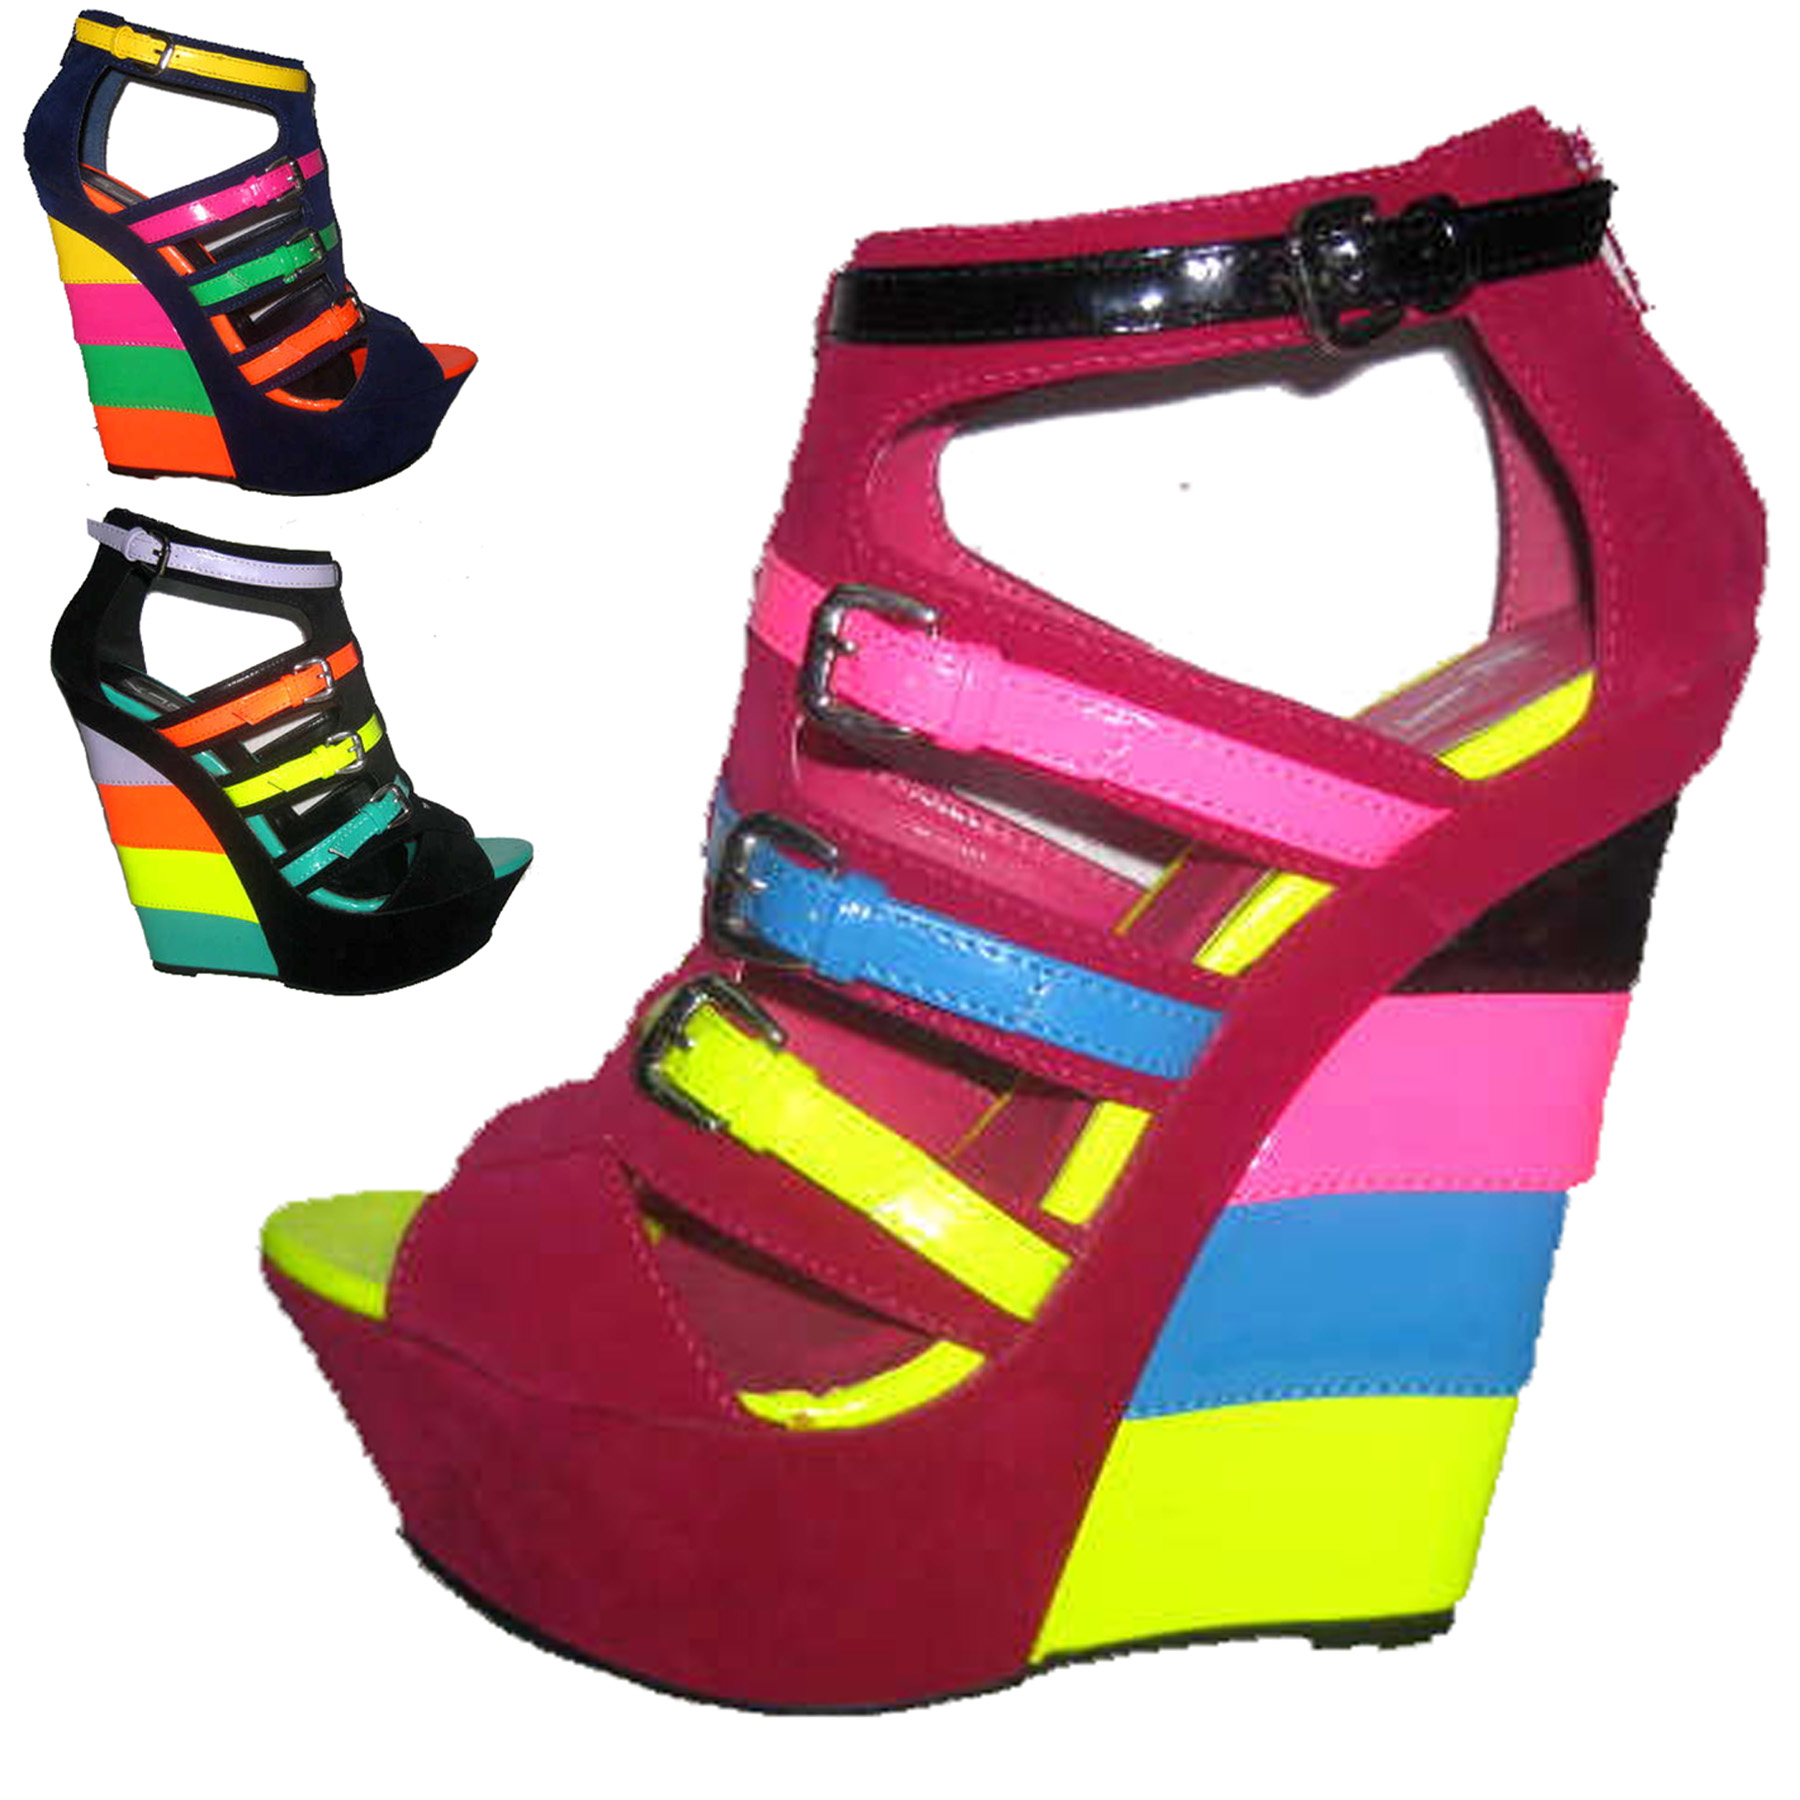 Buy cheap Online - high wedgesFine - Shoes Discount for sale